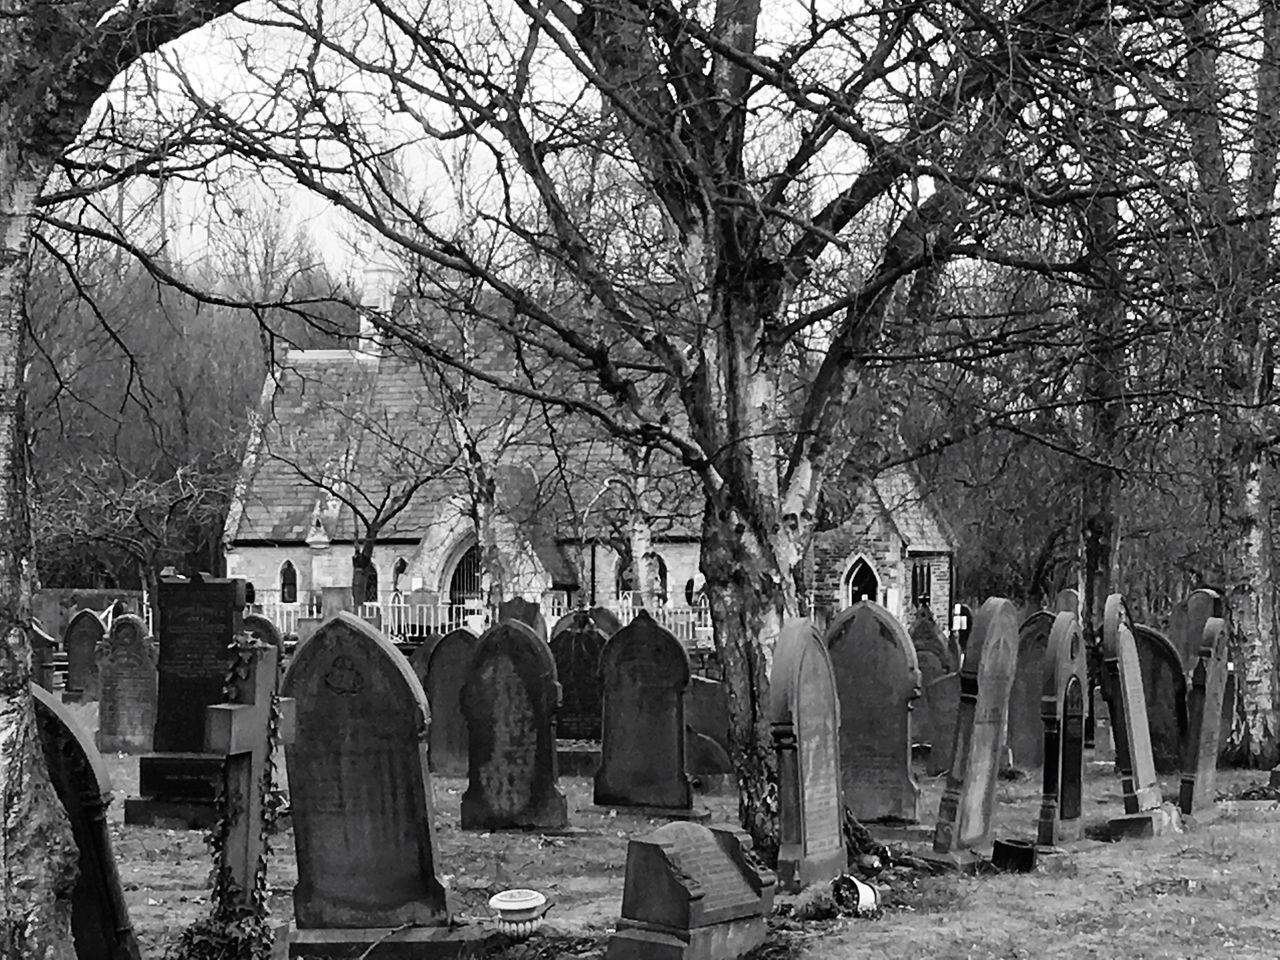 tombstone, cemetery, tree, graveyard, gravestone, bare tree, cross, memorial, grave, outdoors, religion, spirituality, grief, nature, day, no people